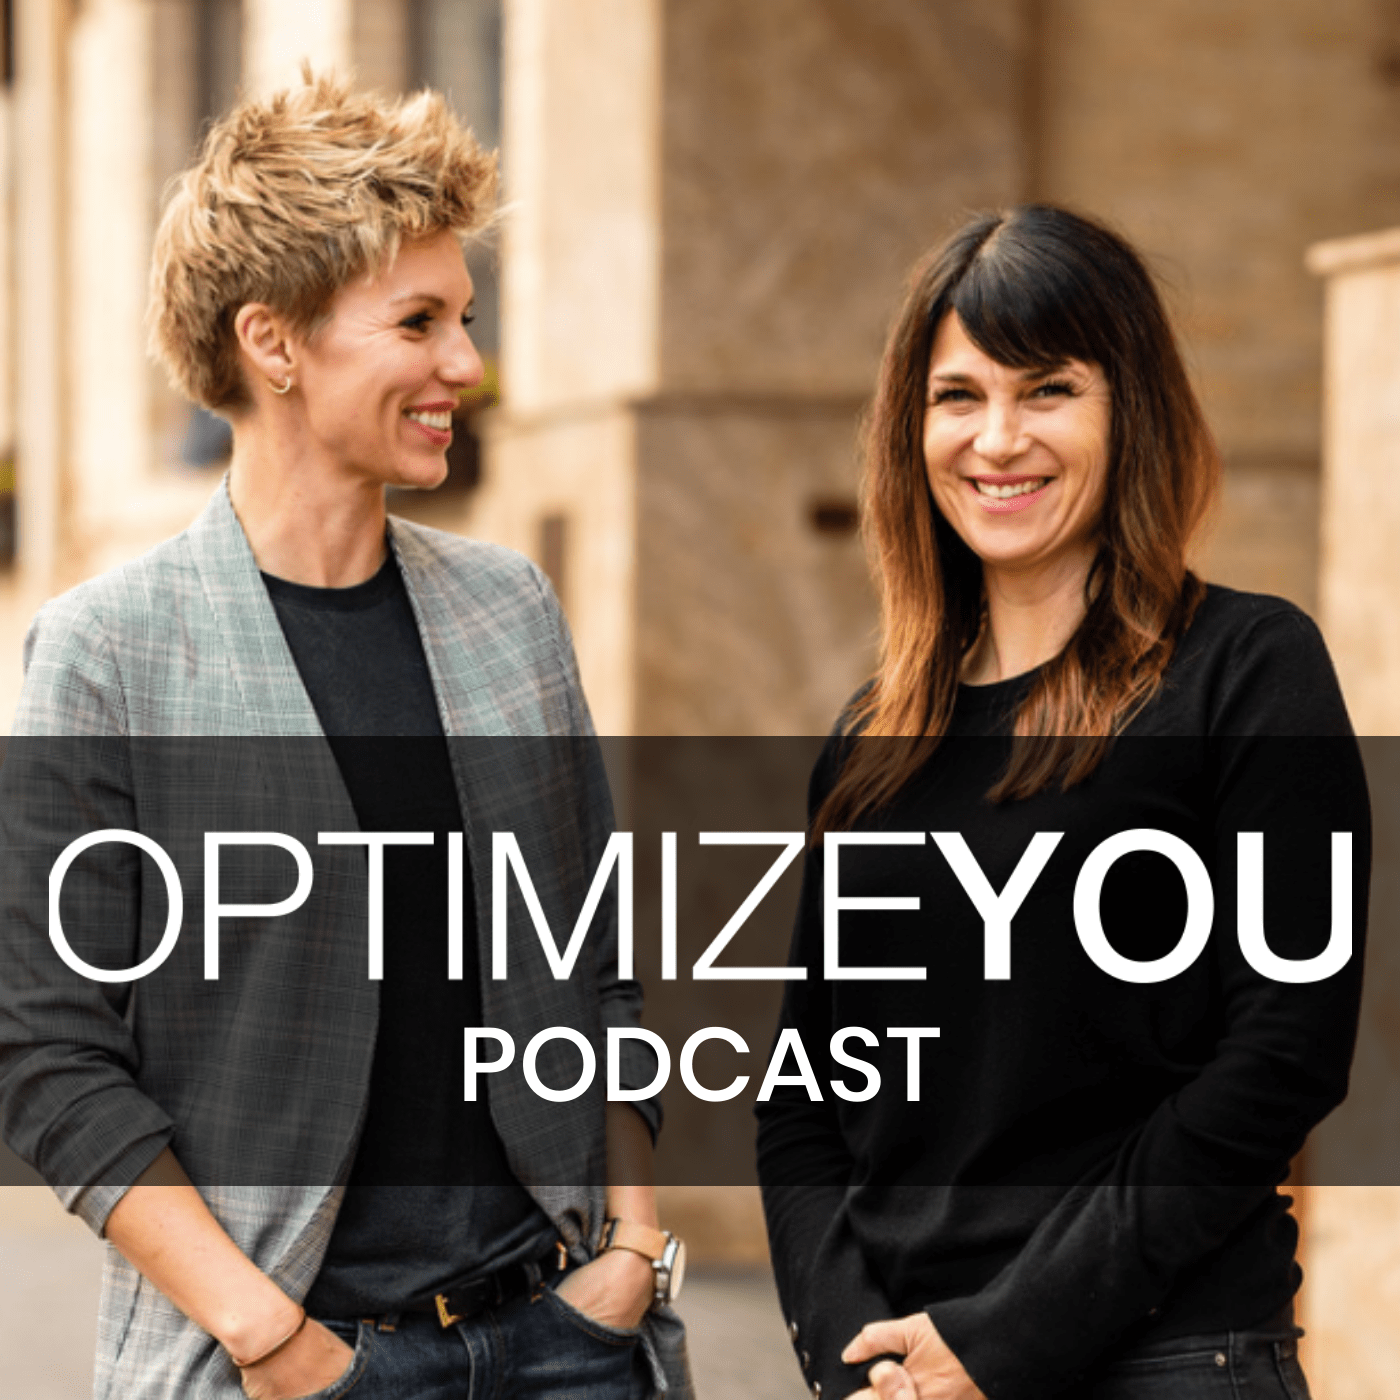 OptimizeYou Podcast show art